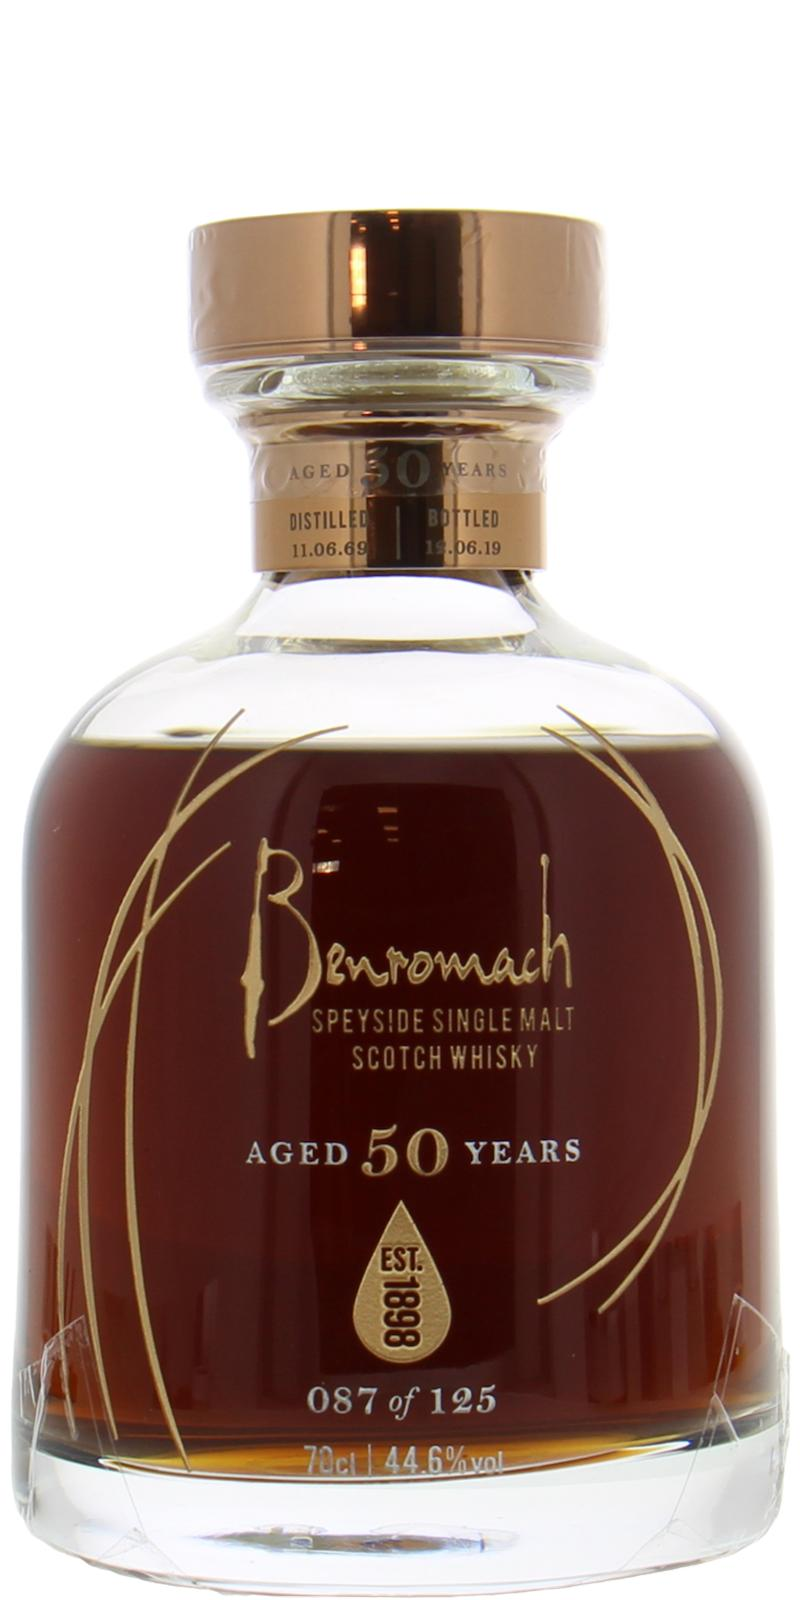 Benromach 50-year-old